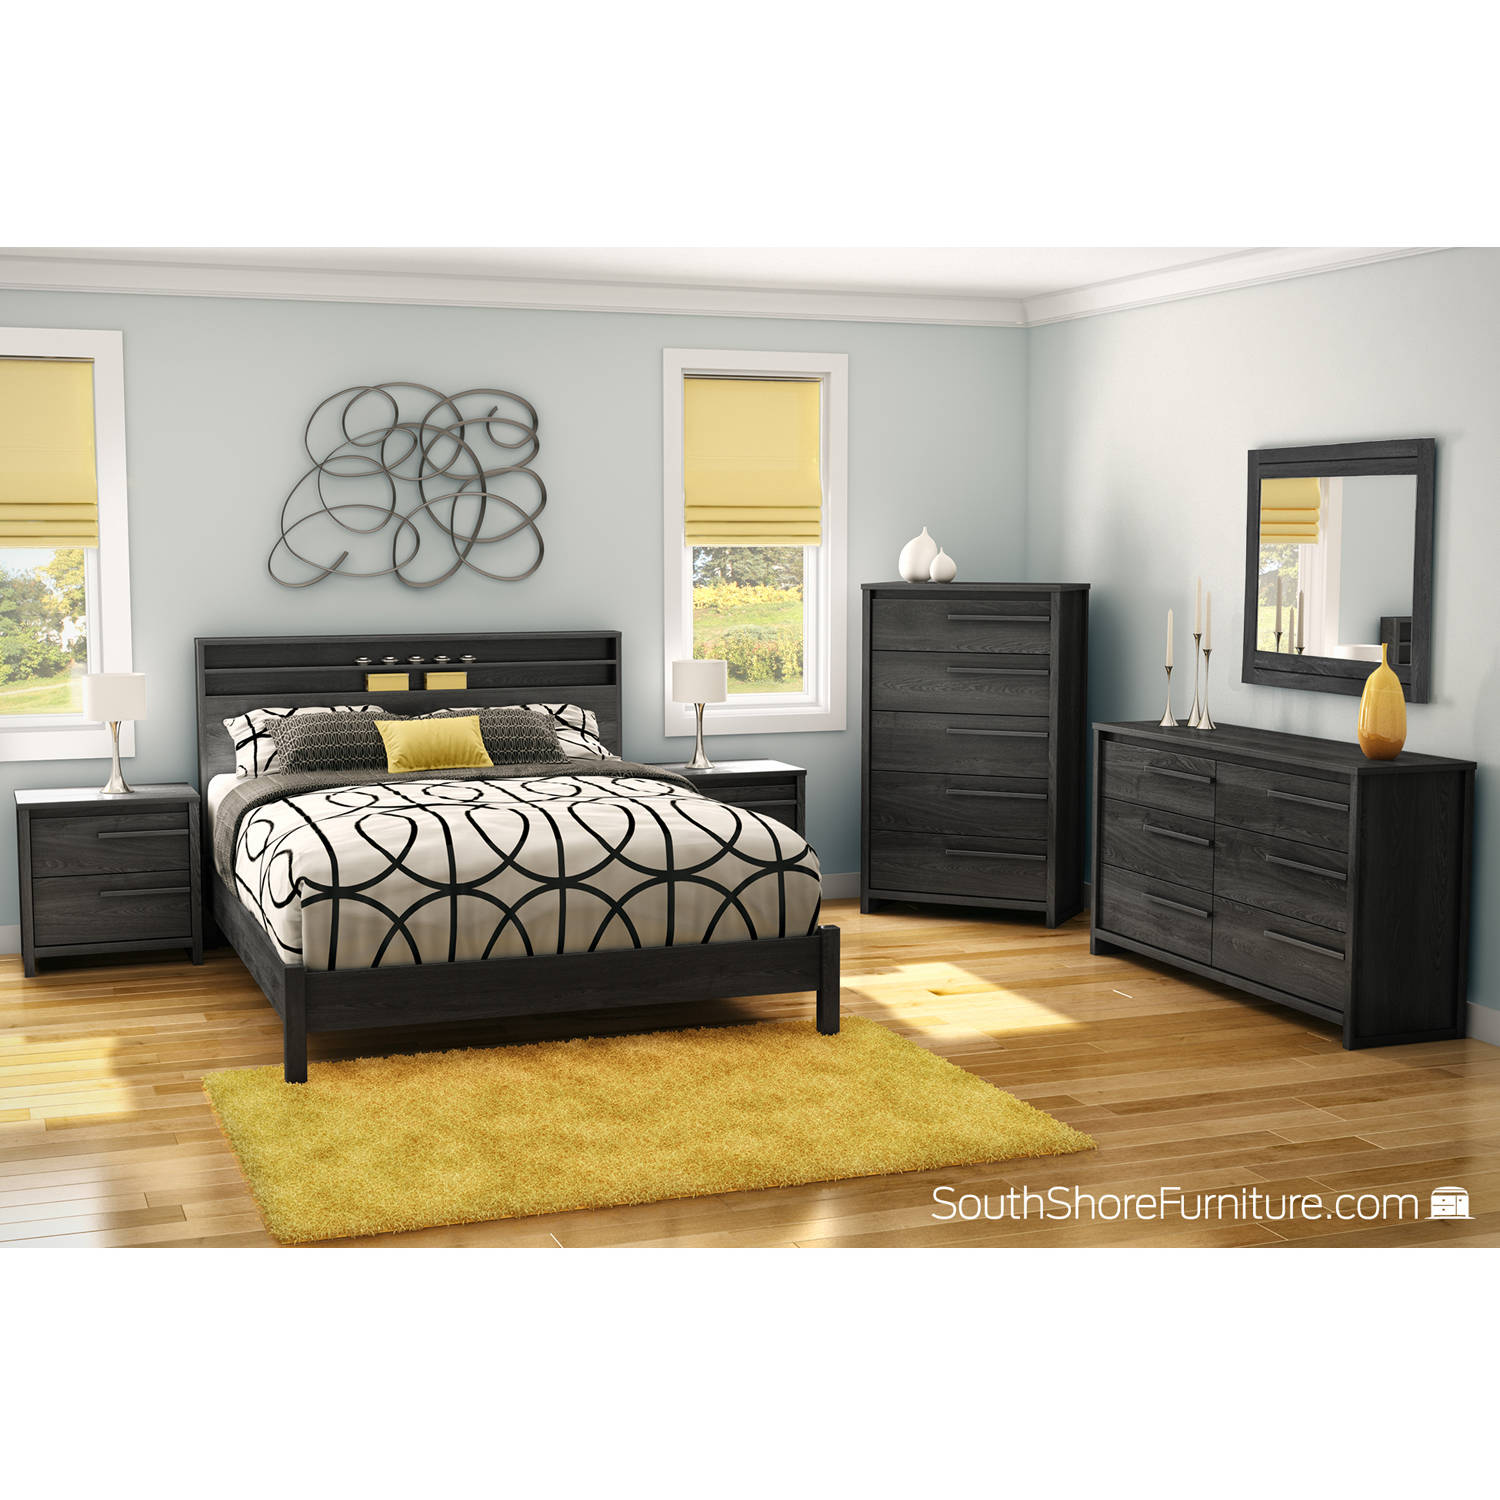 South Shore Tao Master Bedroom Furniture Collection